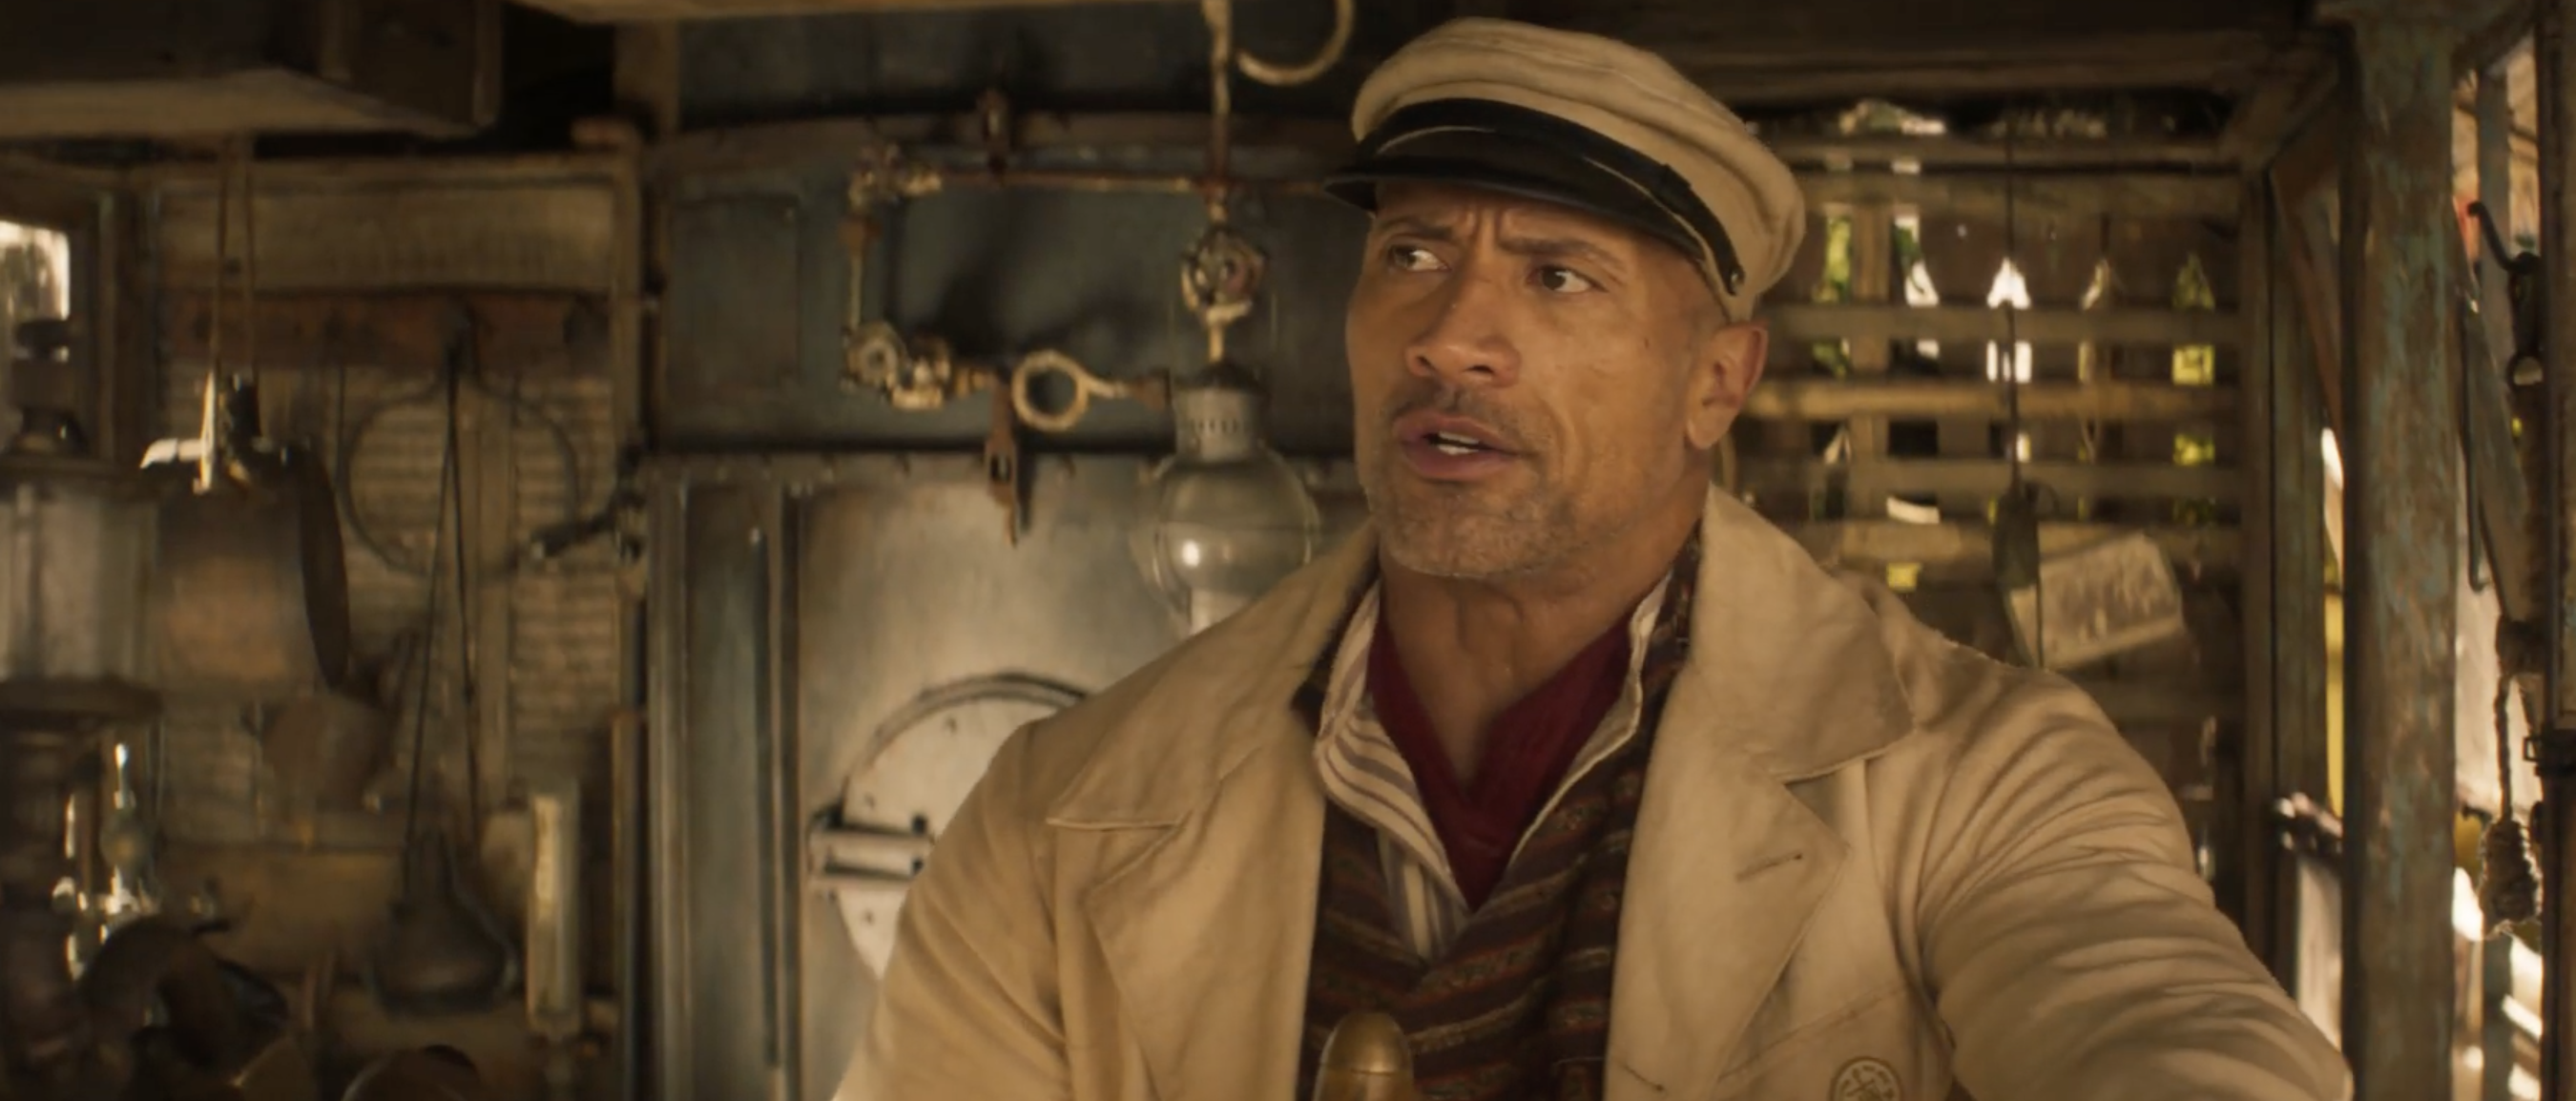 dwayne the rock johnson in a smoldering hot jungle cruise skipper uniform